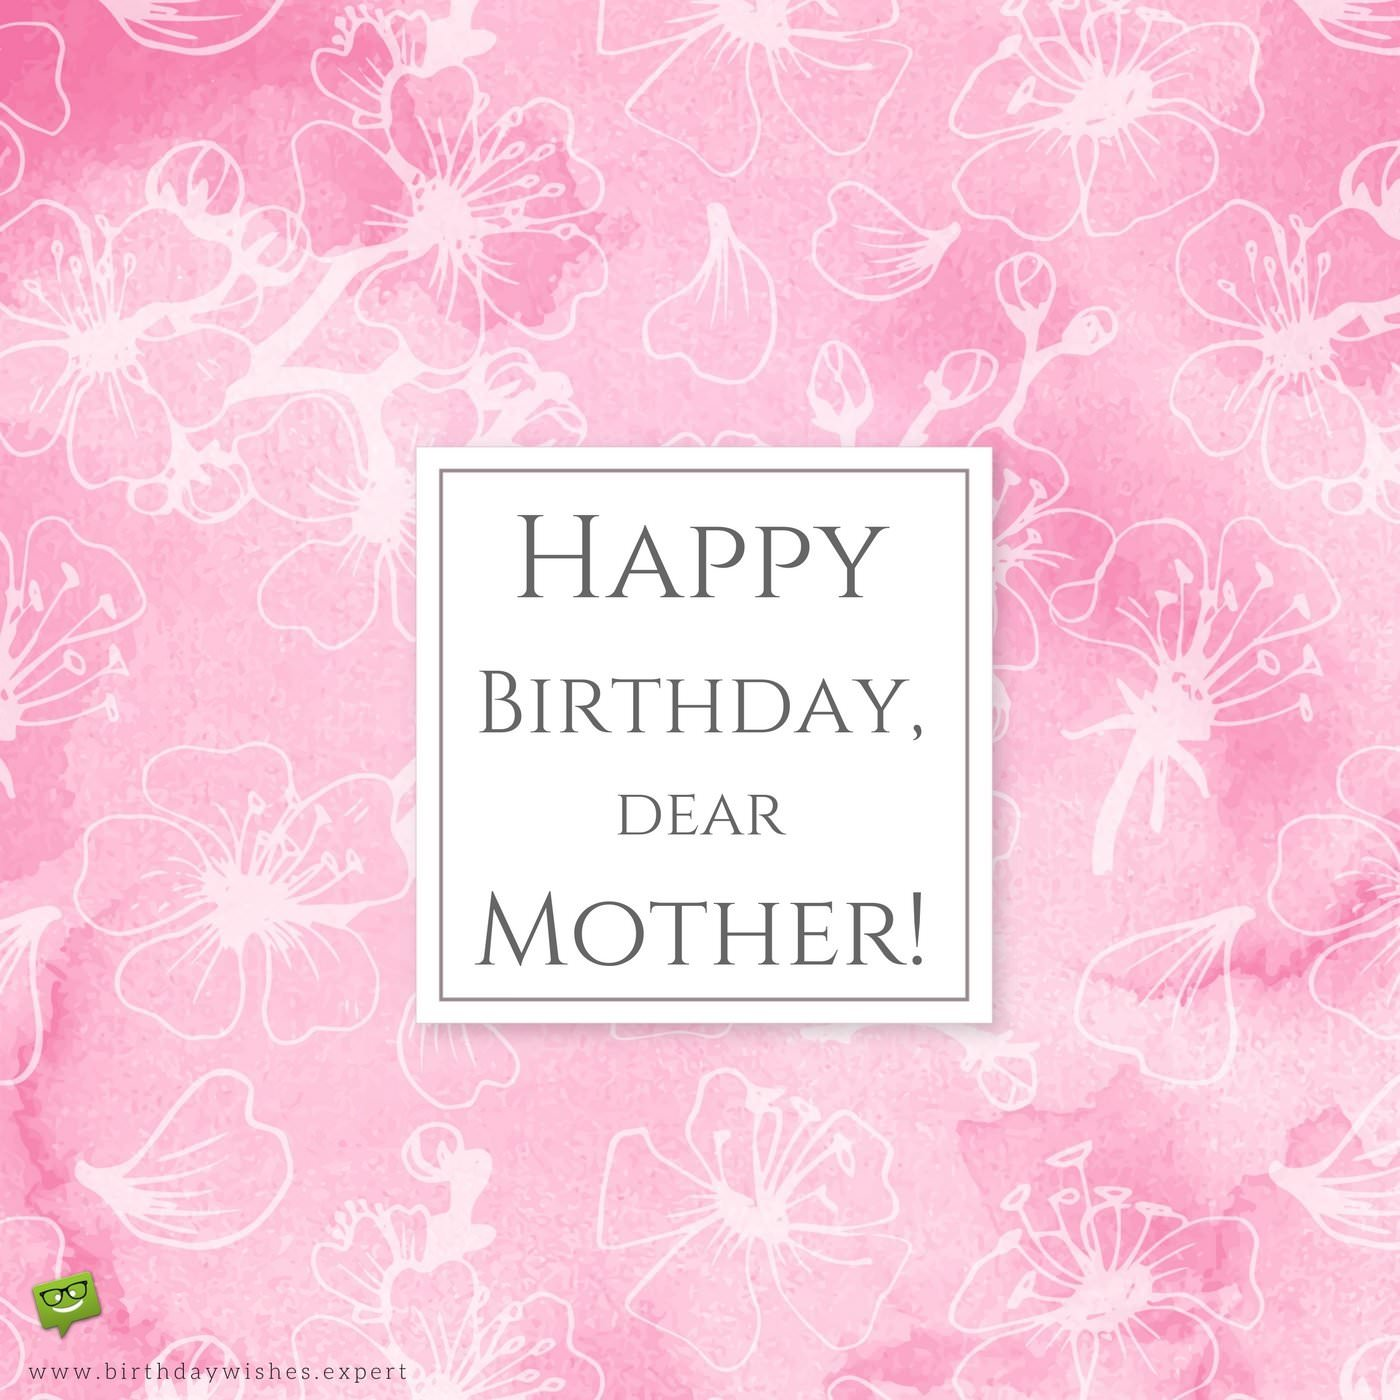 Best mom in the world birthday wishes for your mother happy birthday dear mother m4hsunfo